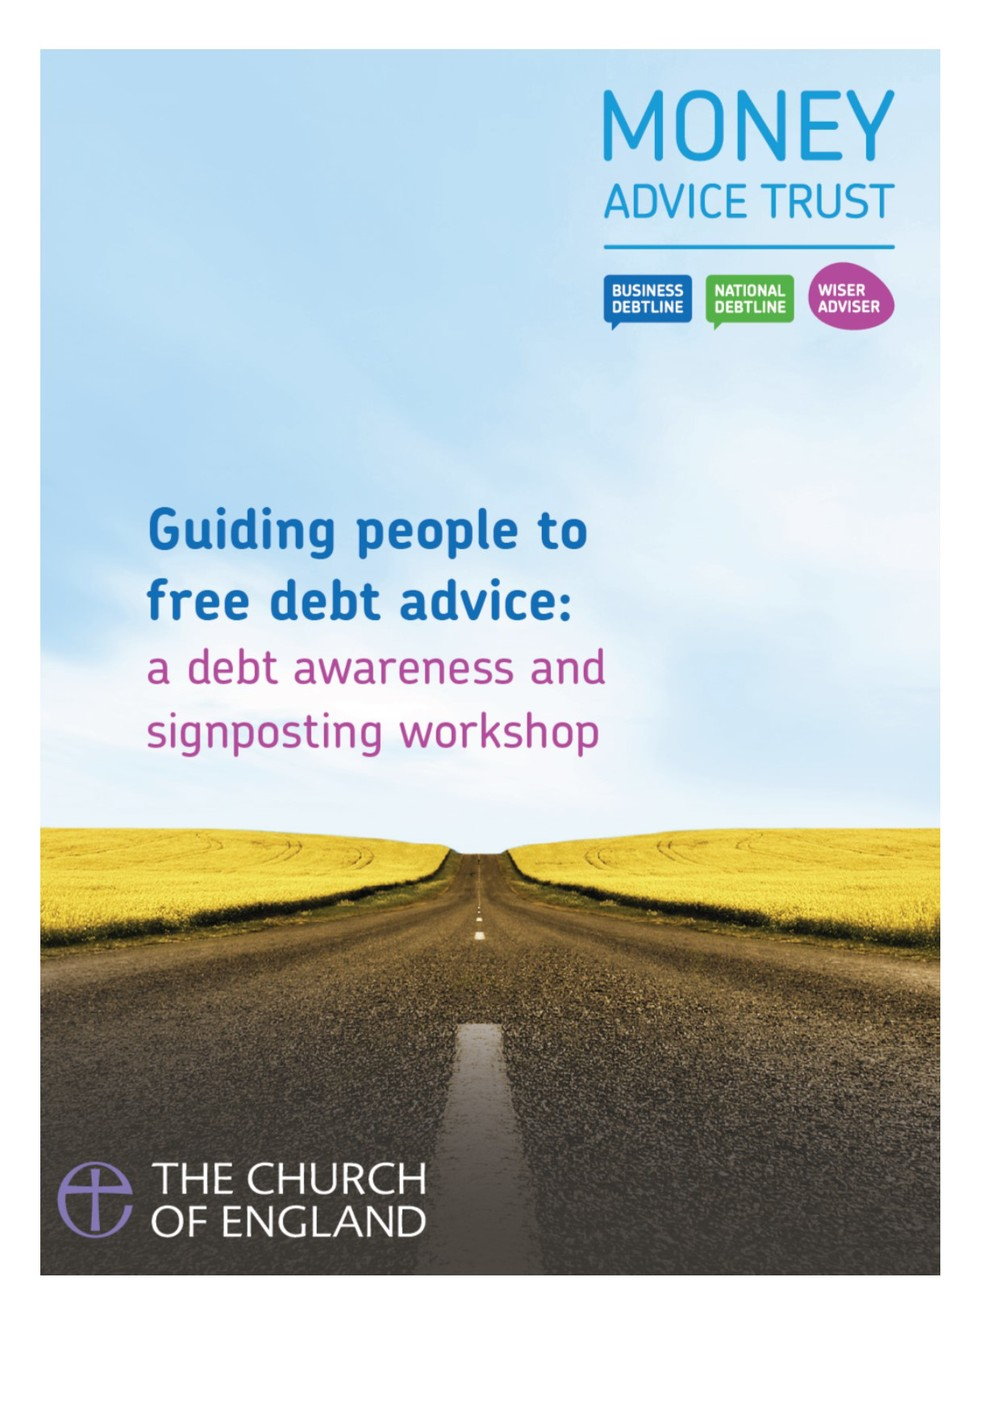 """""""What came across clearly is that signposting to debt advice makes a huge difference to people's lives"""" """"The workshopprovoked lively discussions in the group and as a church we're thinking of ways to follow up on what was discussed"""""""